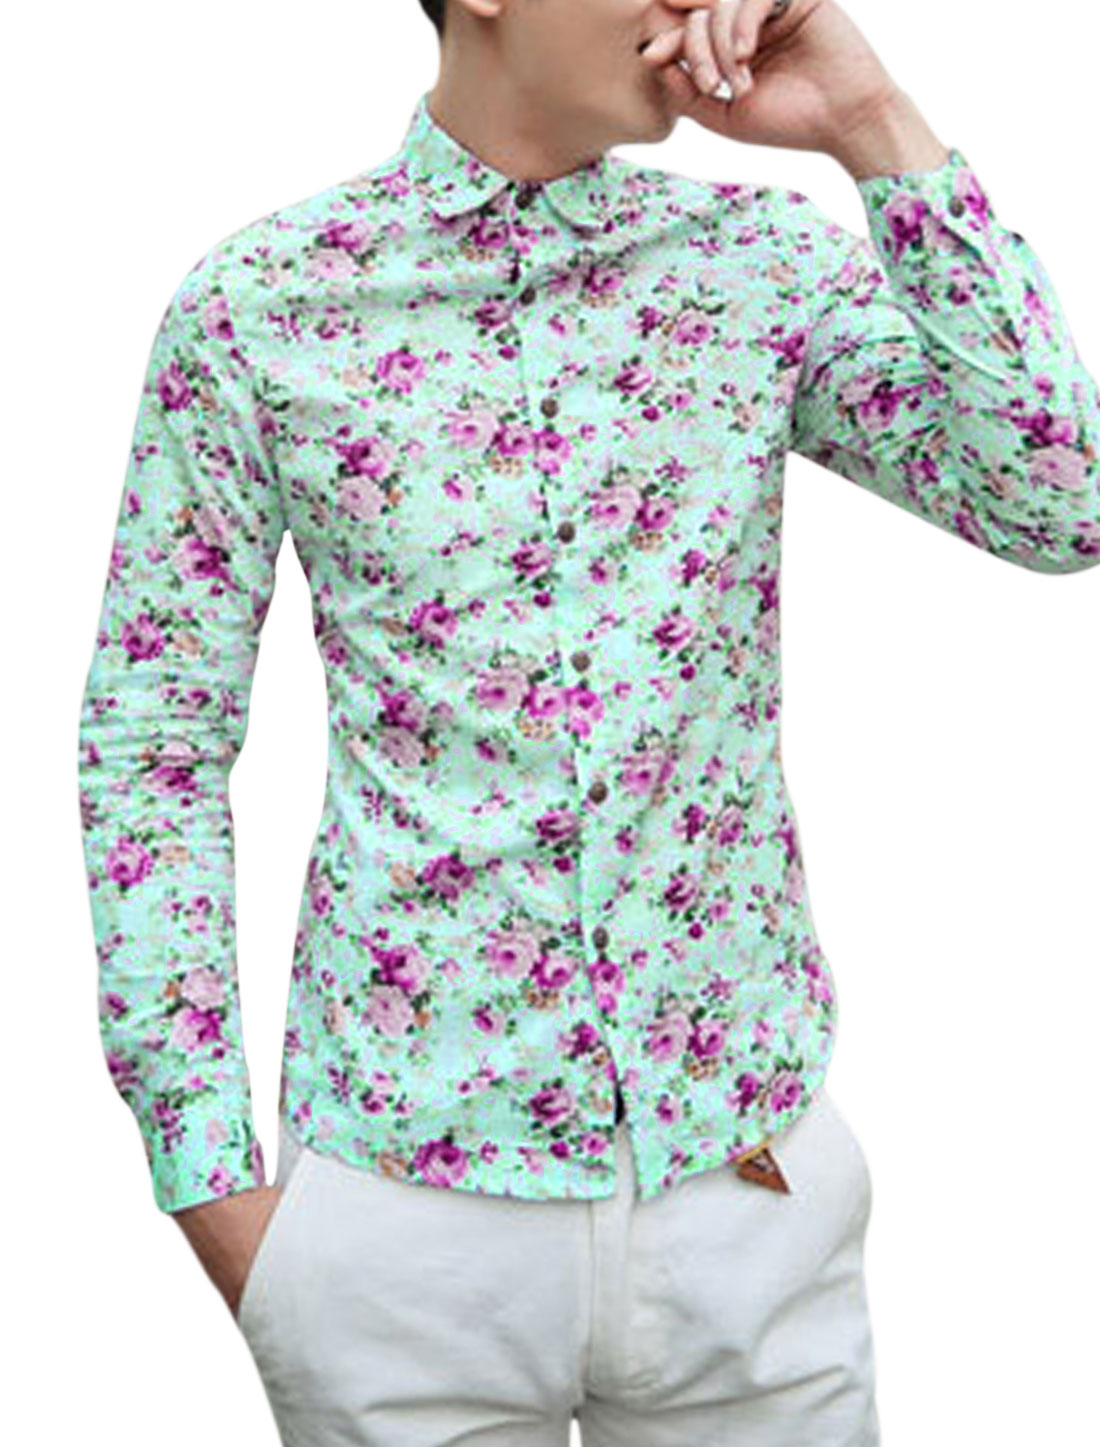 Men All-Over Flower Print Single Breasted Round Hem Shirt Fuchsia Light Blue S